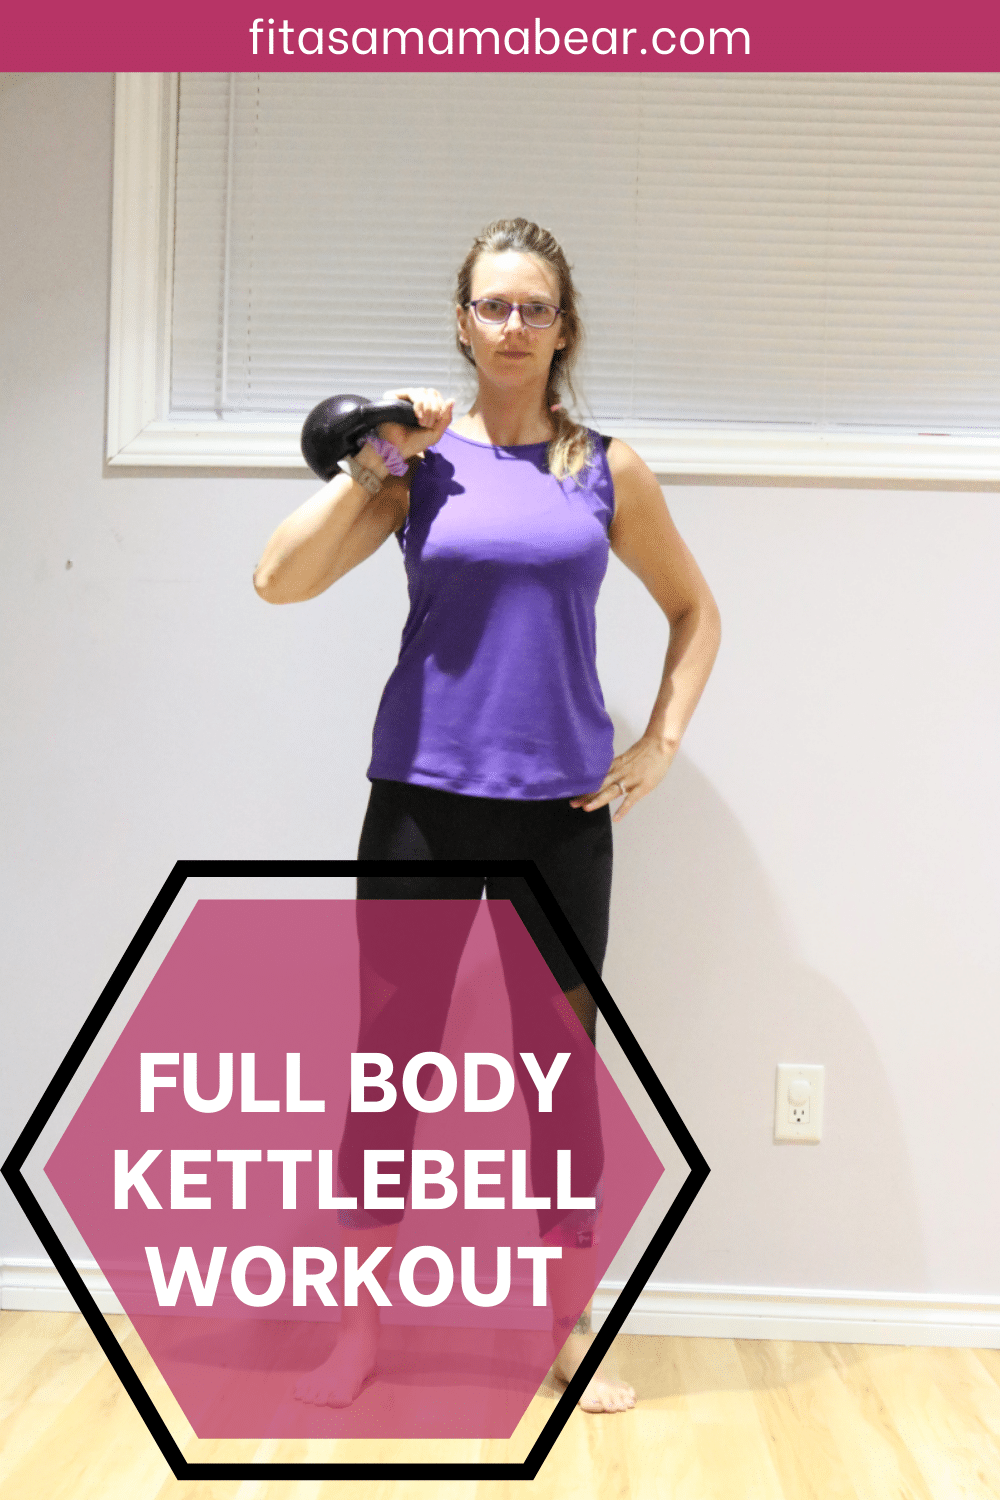 Pinterest image with text: a lady in a purple shirt holding a kettlebell over her back